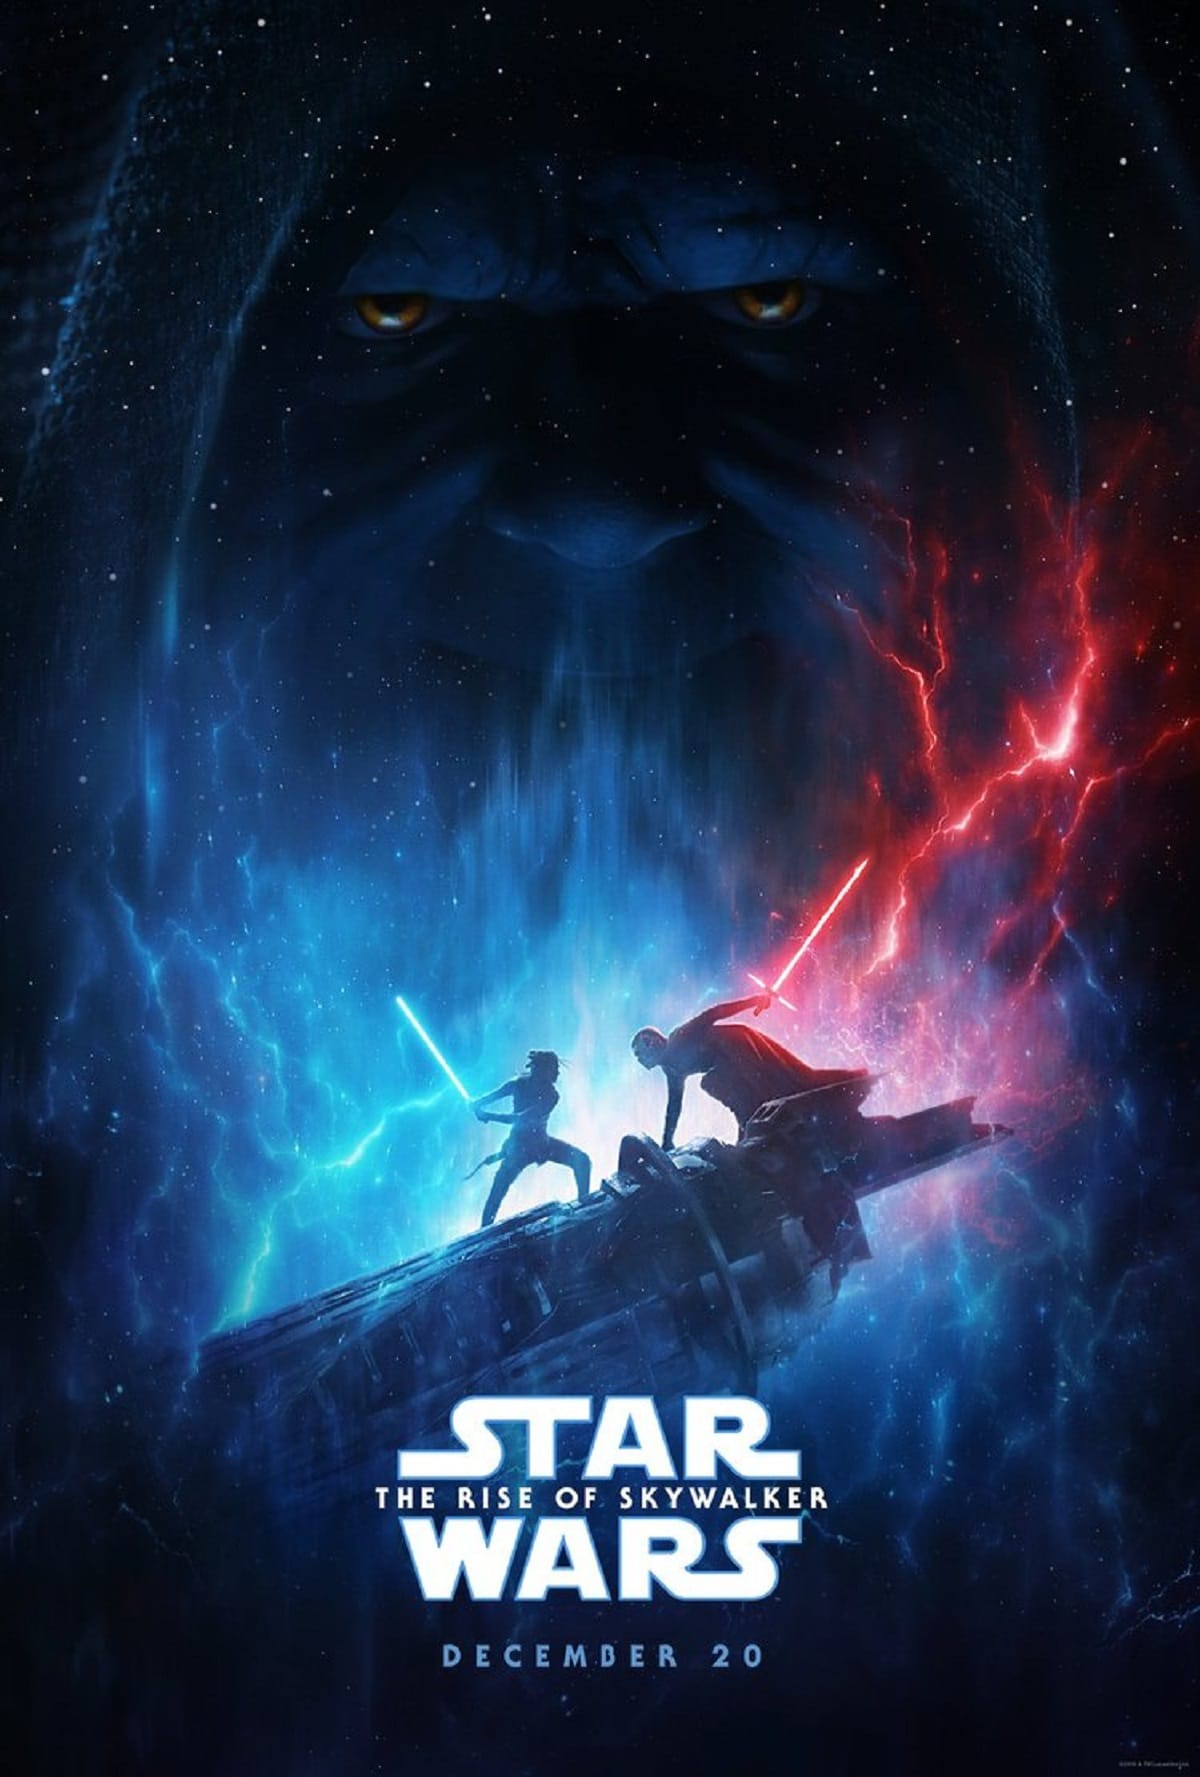 Star Wars: The Rise of Skywalker D23 Expo 2019 poster. Pic credit: Lucasfilm.